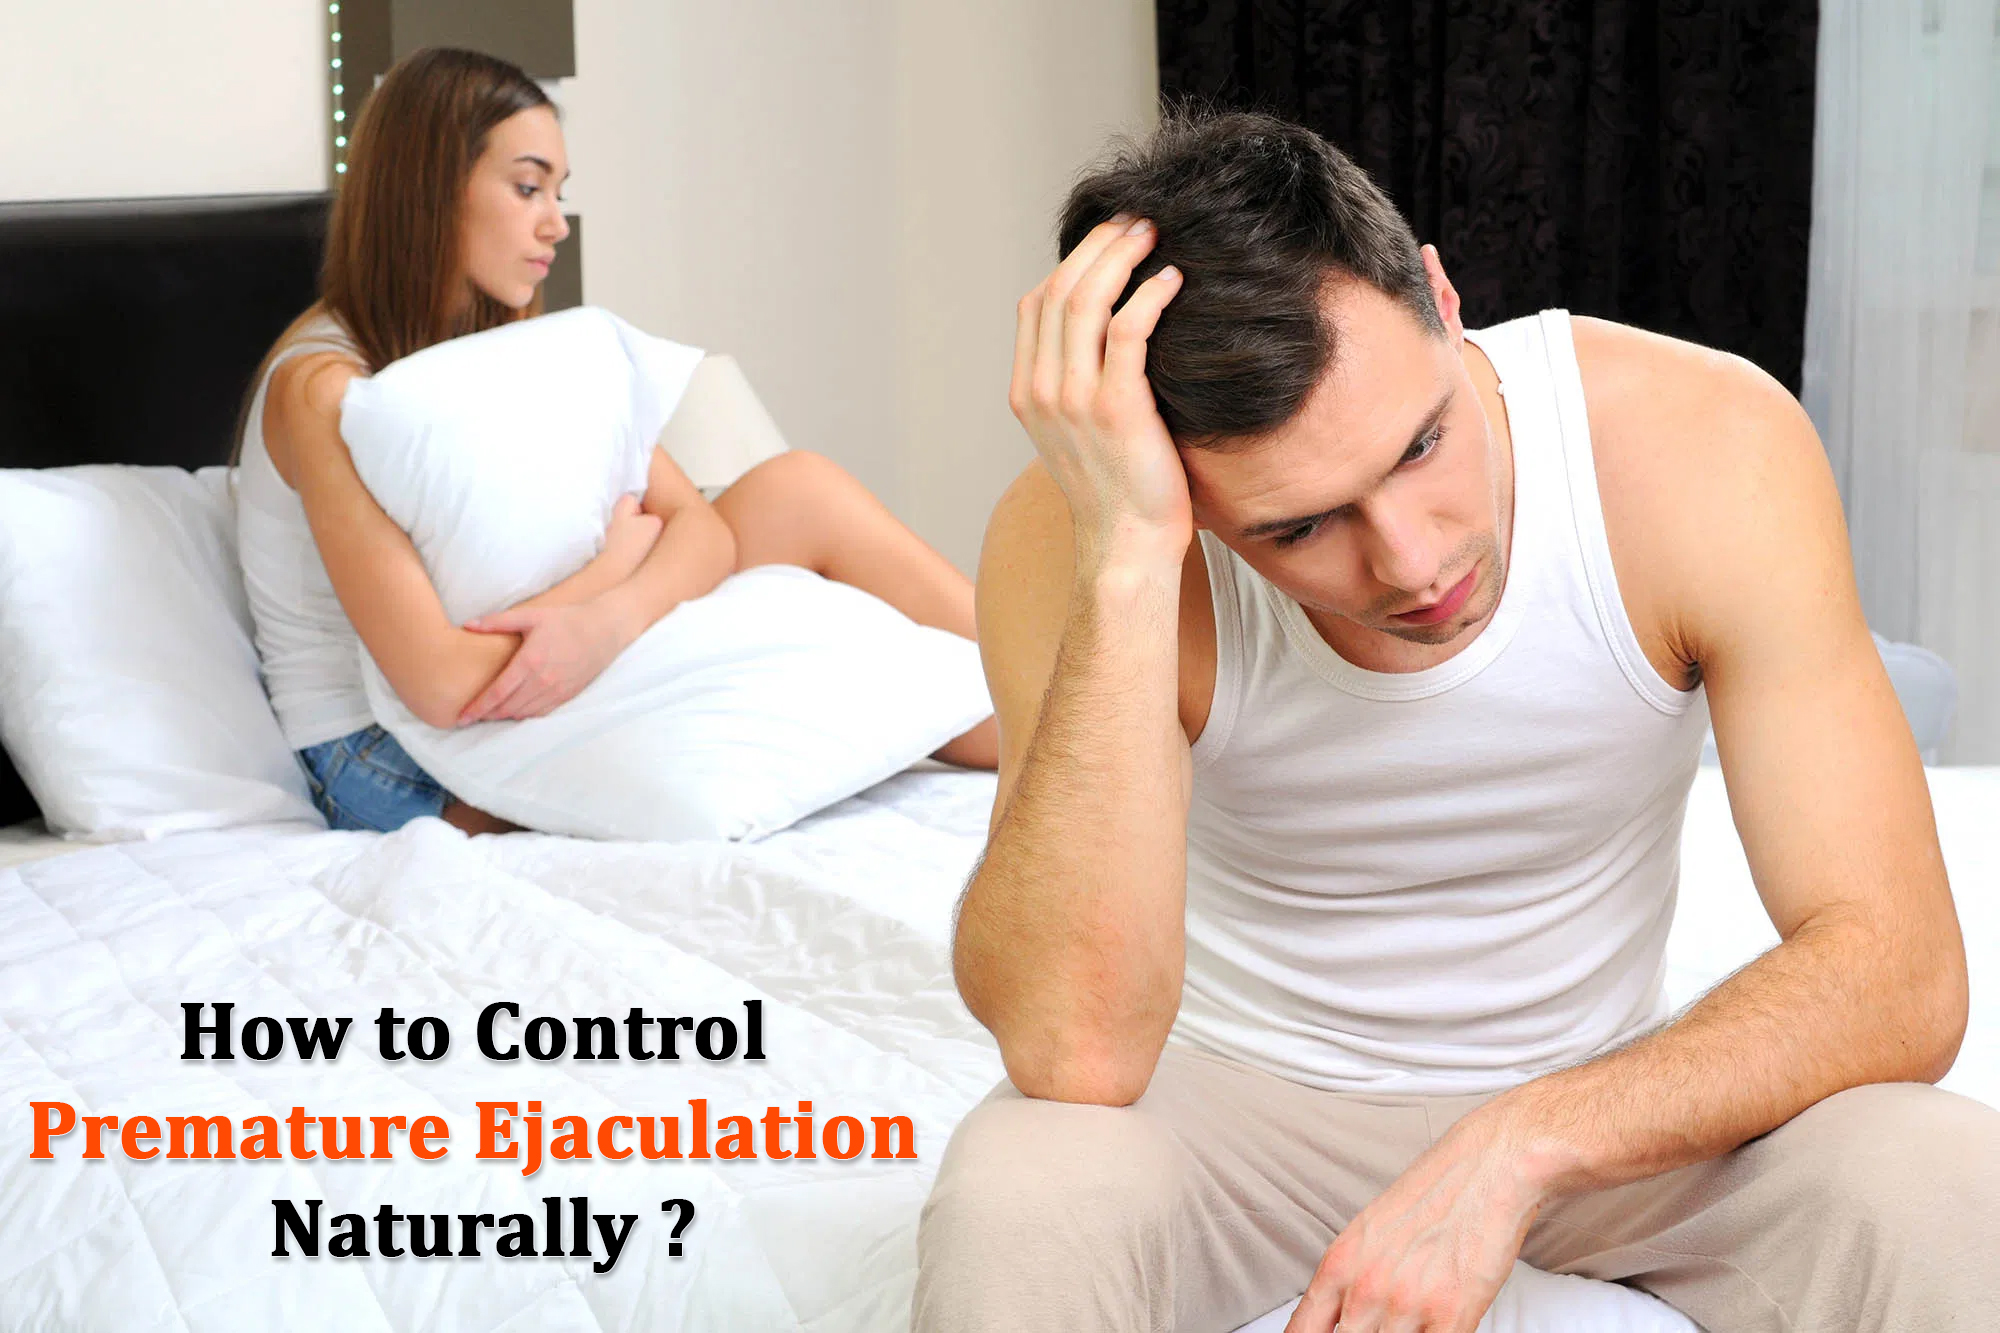 How to Control Premature Ejaculation Naturally 1